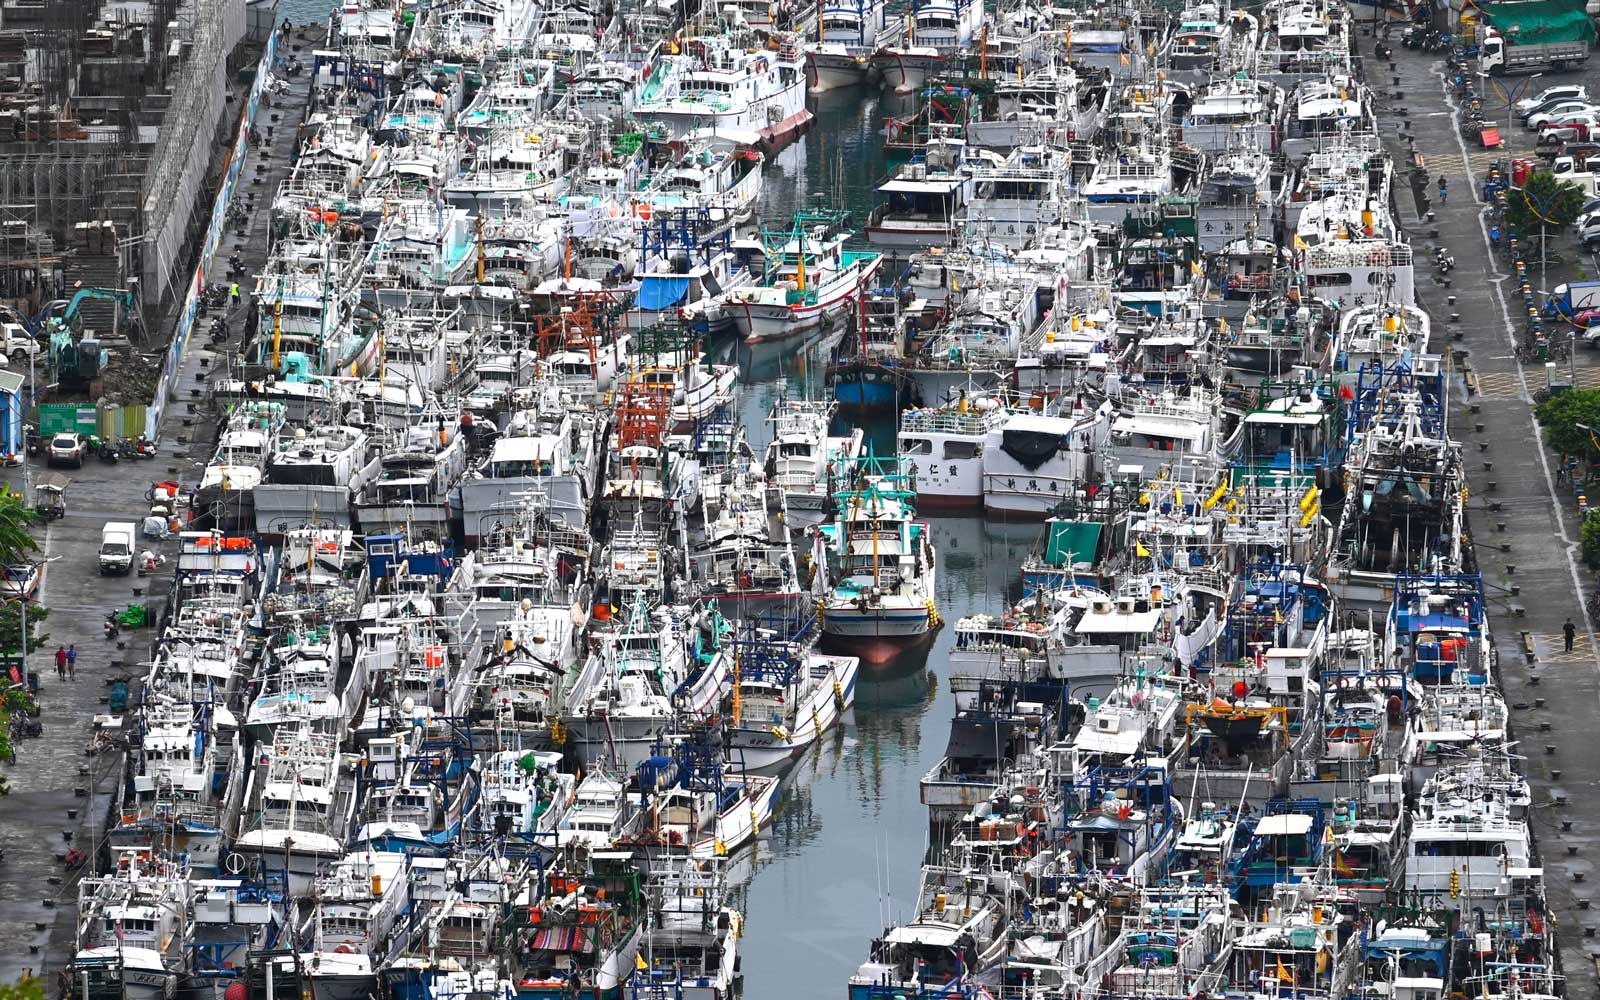 This overview shows fishing boats packed into the typhoon shelter at Nanfangao harbour in Suao, Yilan county, as Typhoon Lekima approaches off the shores of eastern Taiwan on August 8, 2019.